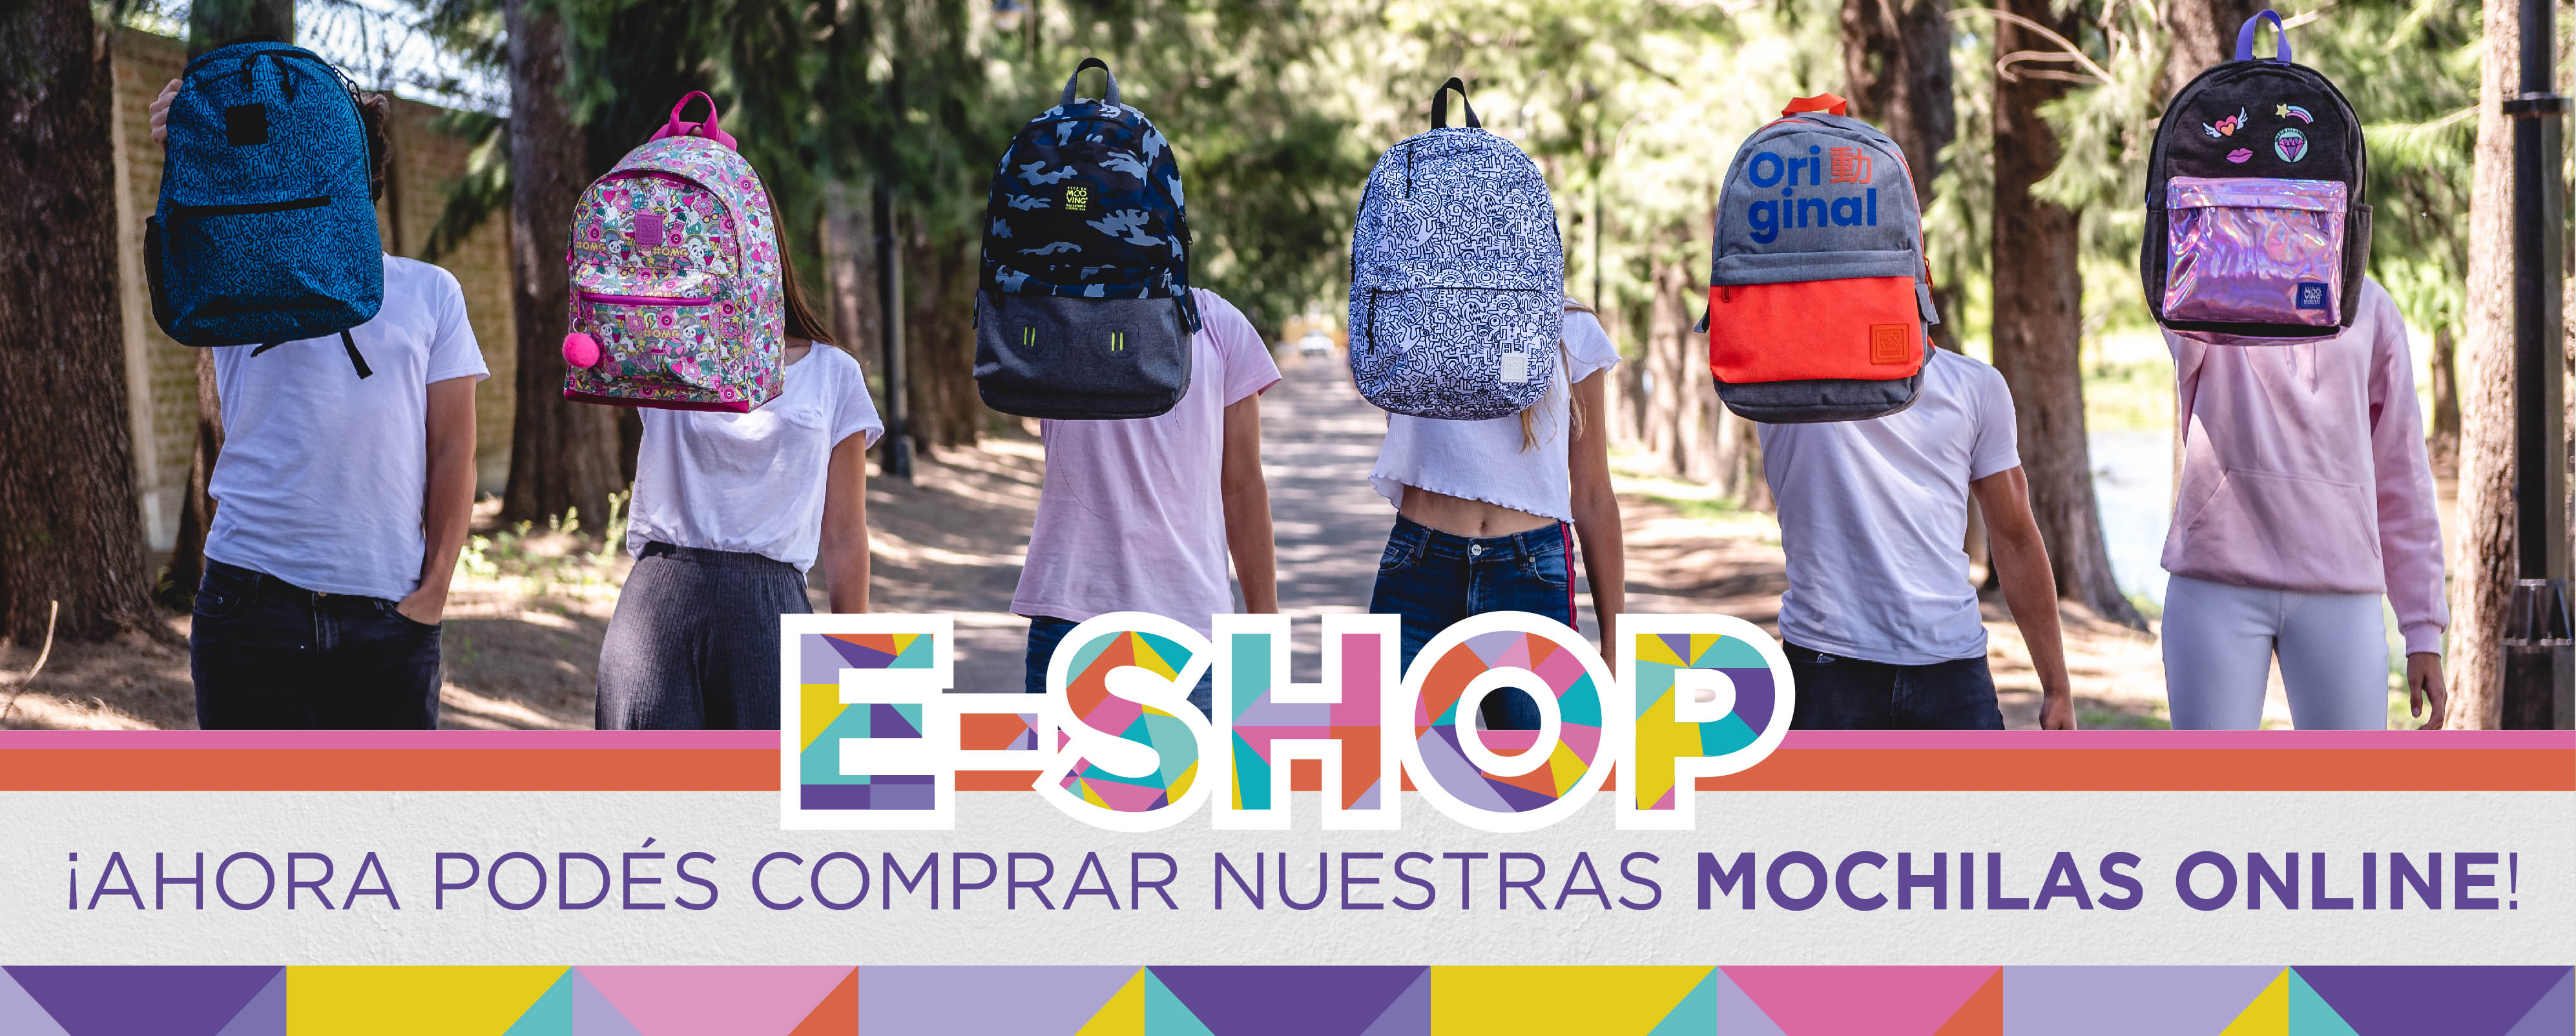 e-shop mochilas